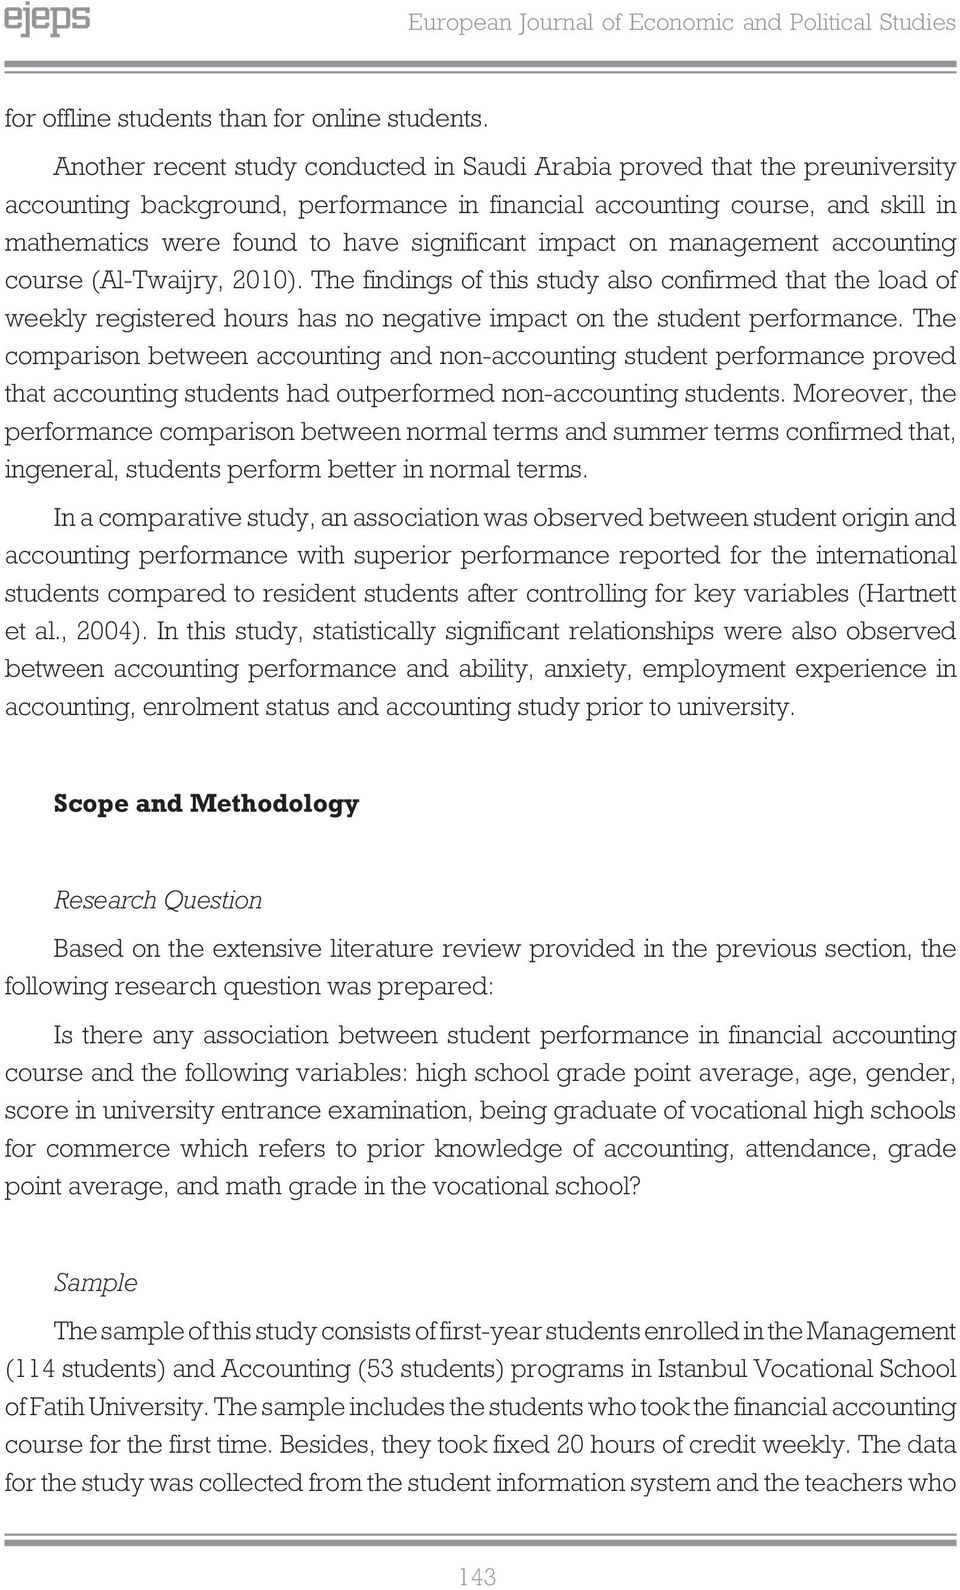 impact on management accounting course (Al-Twaijry, 2010). The findings of this study also confirmed that the load of weekly registered hours has no negative impact on the student performance.